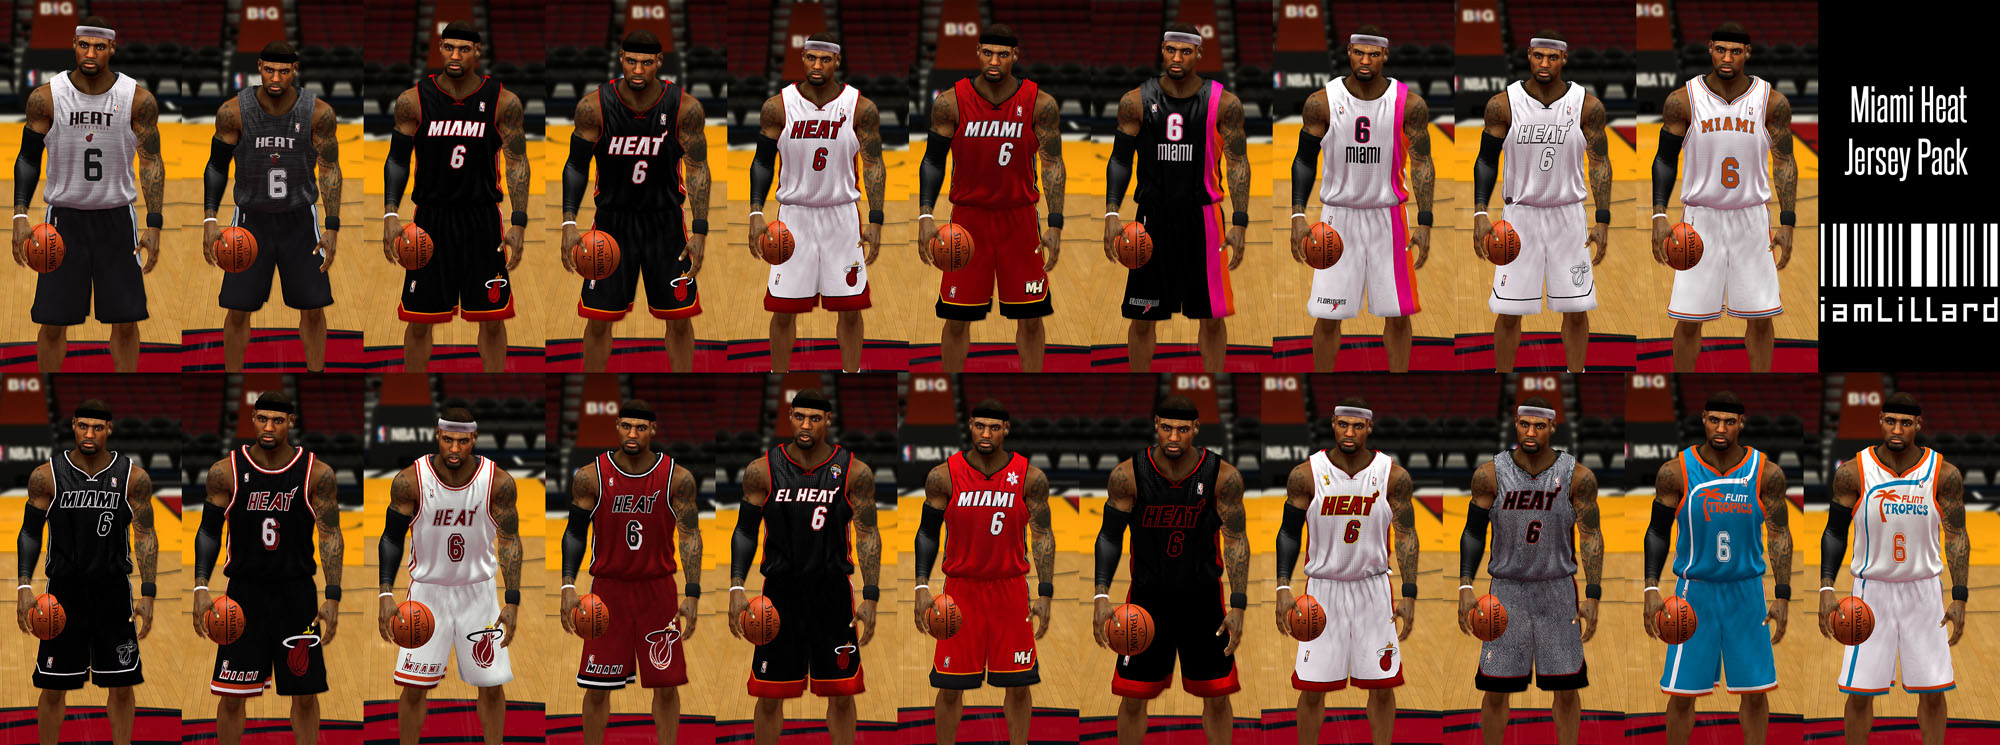 619c2147f07 ... Jersey - NBA 2K14 at ModdingWay NLSC Forum • iamLillard - bucks court  ...